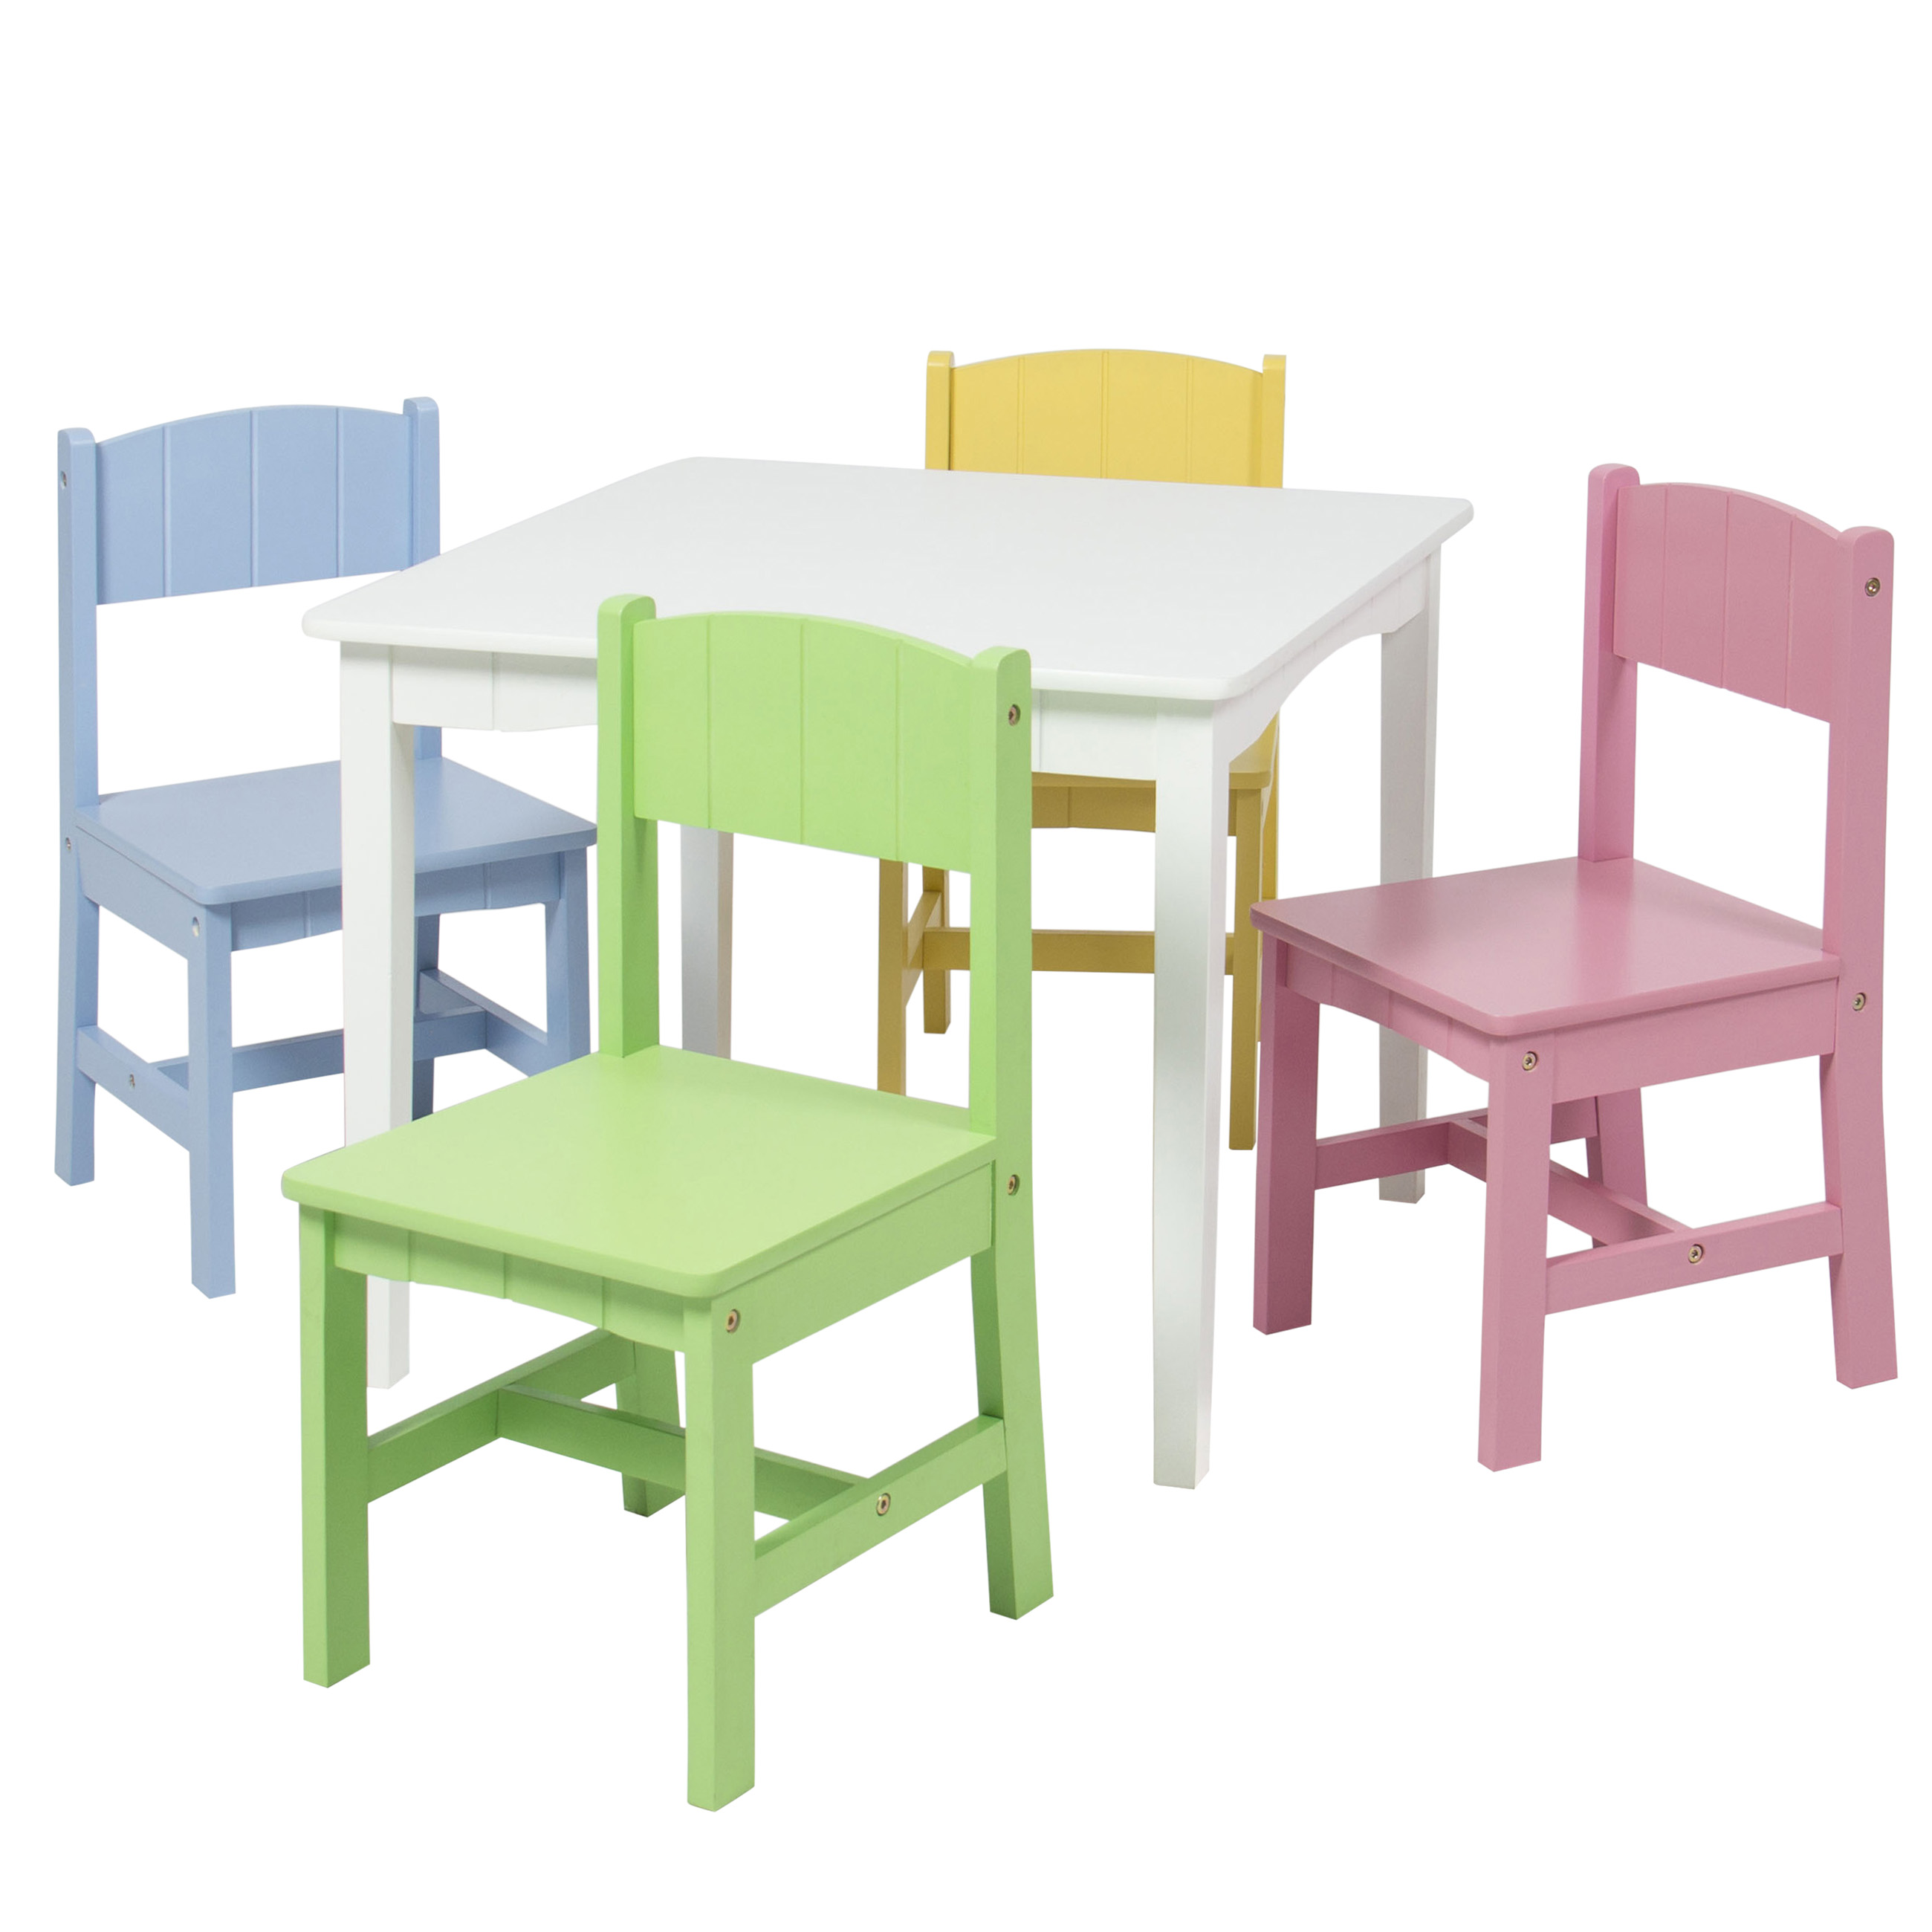 Kids Wooden Table And Chairs Wooden Kids Table And 4 Chairs Set Furniture Play Area